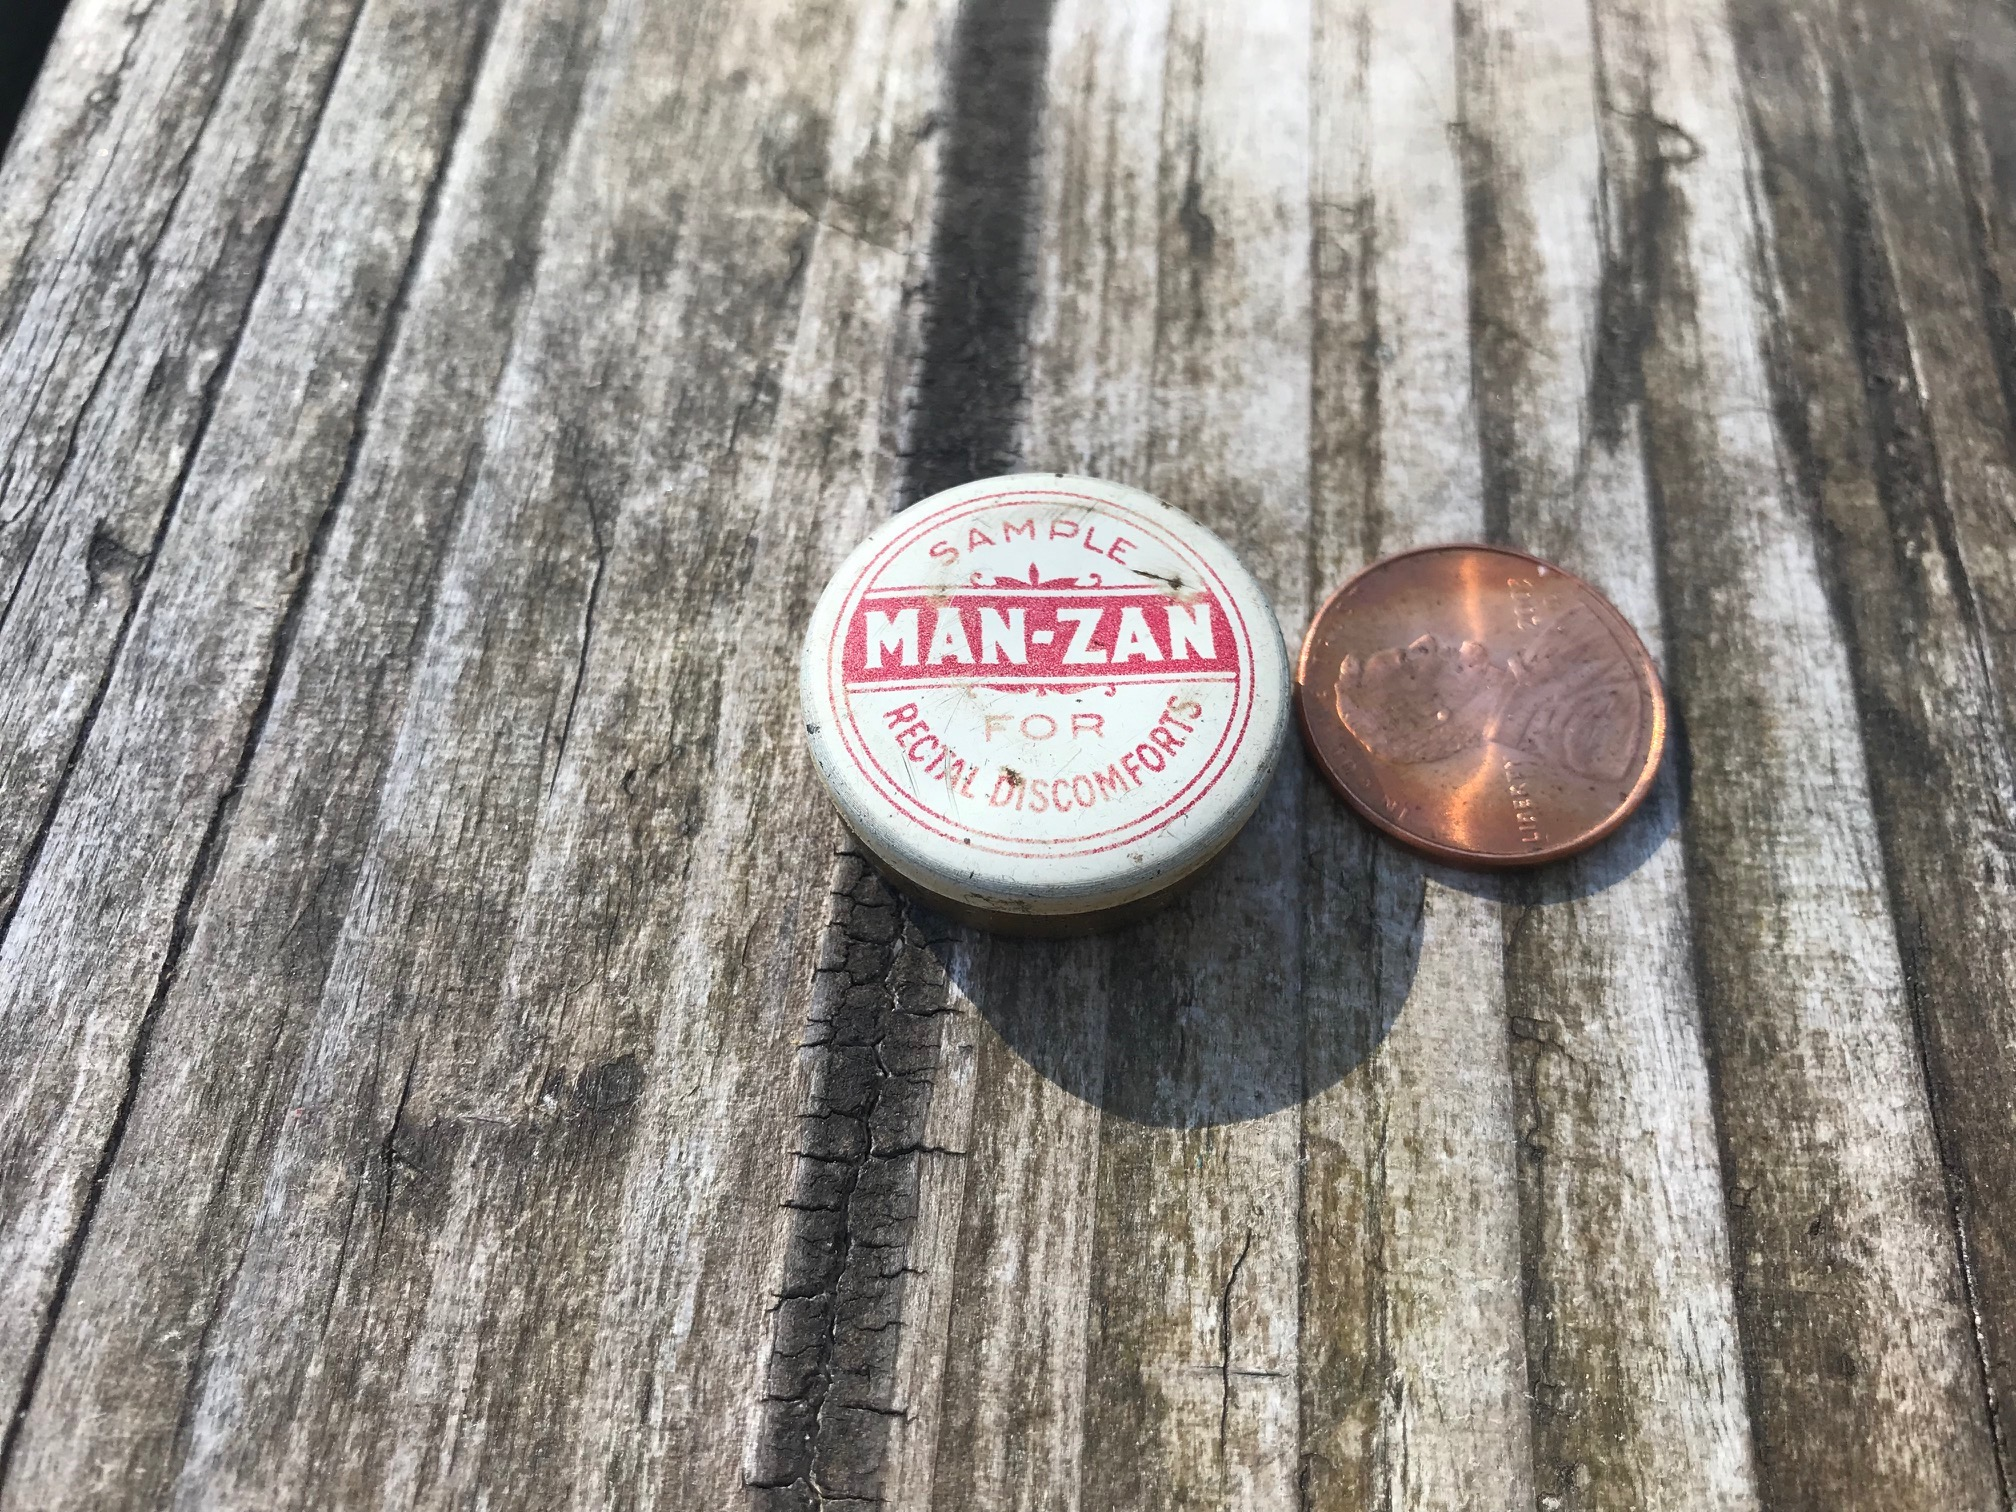 Vintage Tin - Sample Man-Zan Cream for Rectal Discomfort: 1,805 ppm Lead + 975 ppm Mercury [Not a good idea to let kids play with vintage tins!]